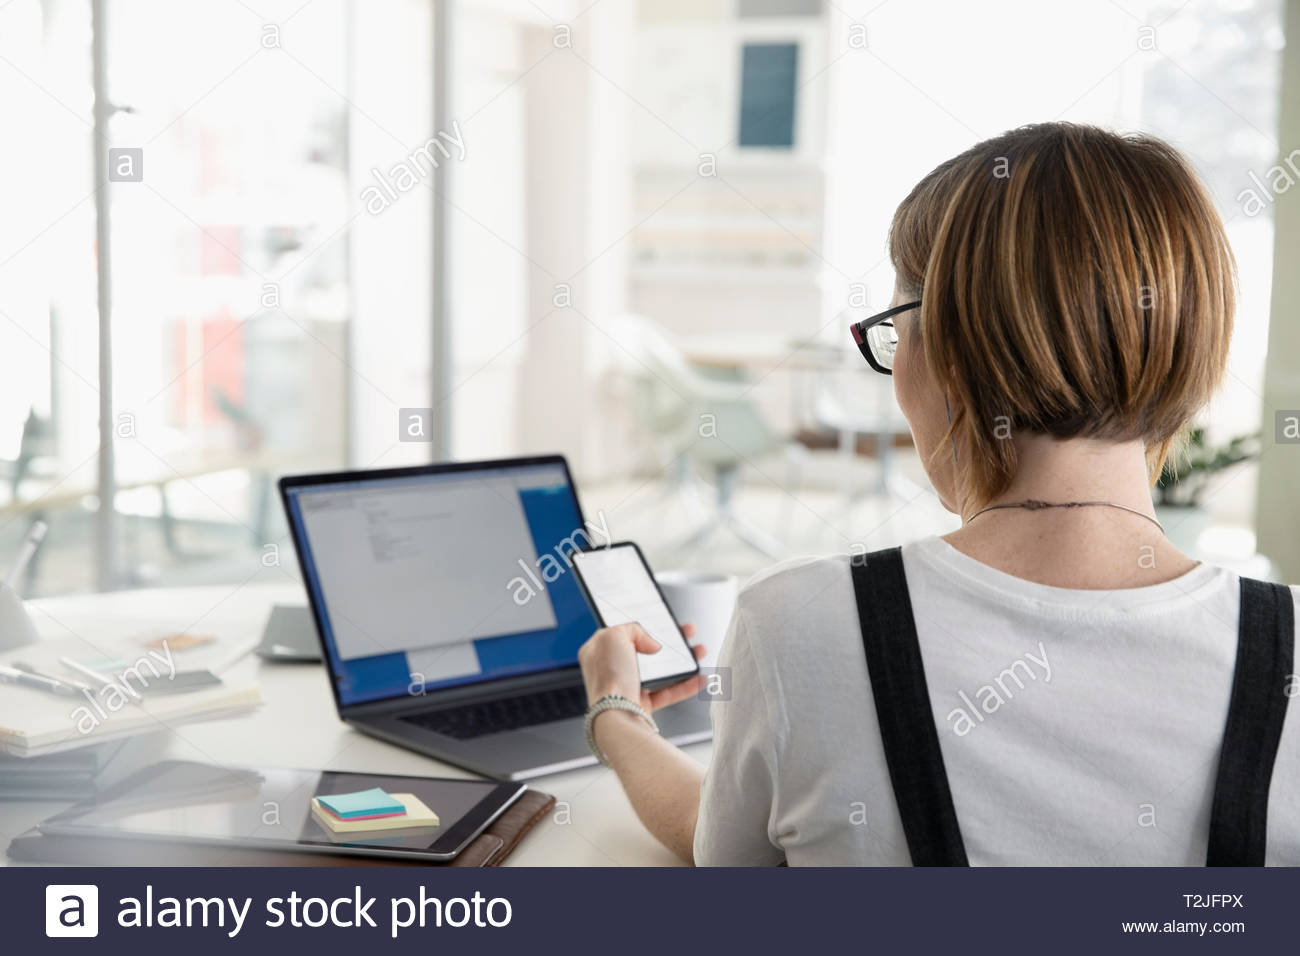 Businesswoman using smart phone at desk in office Photo Stock